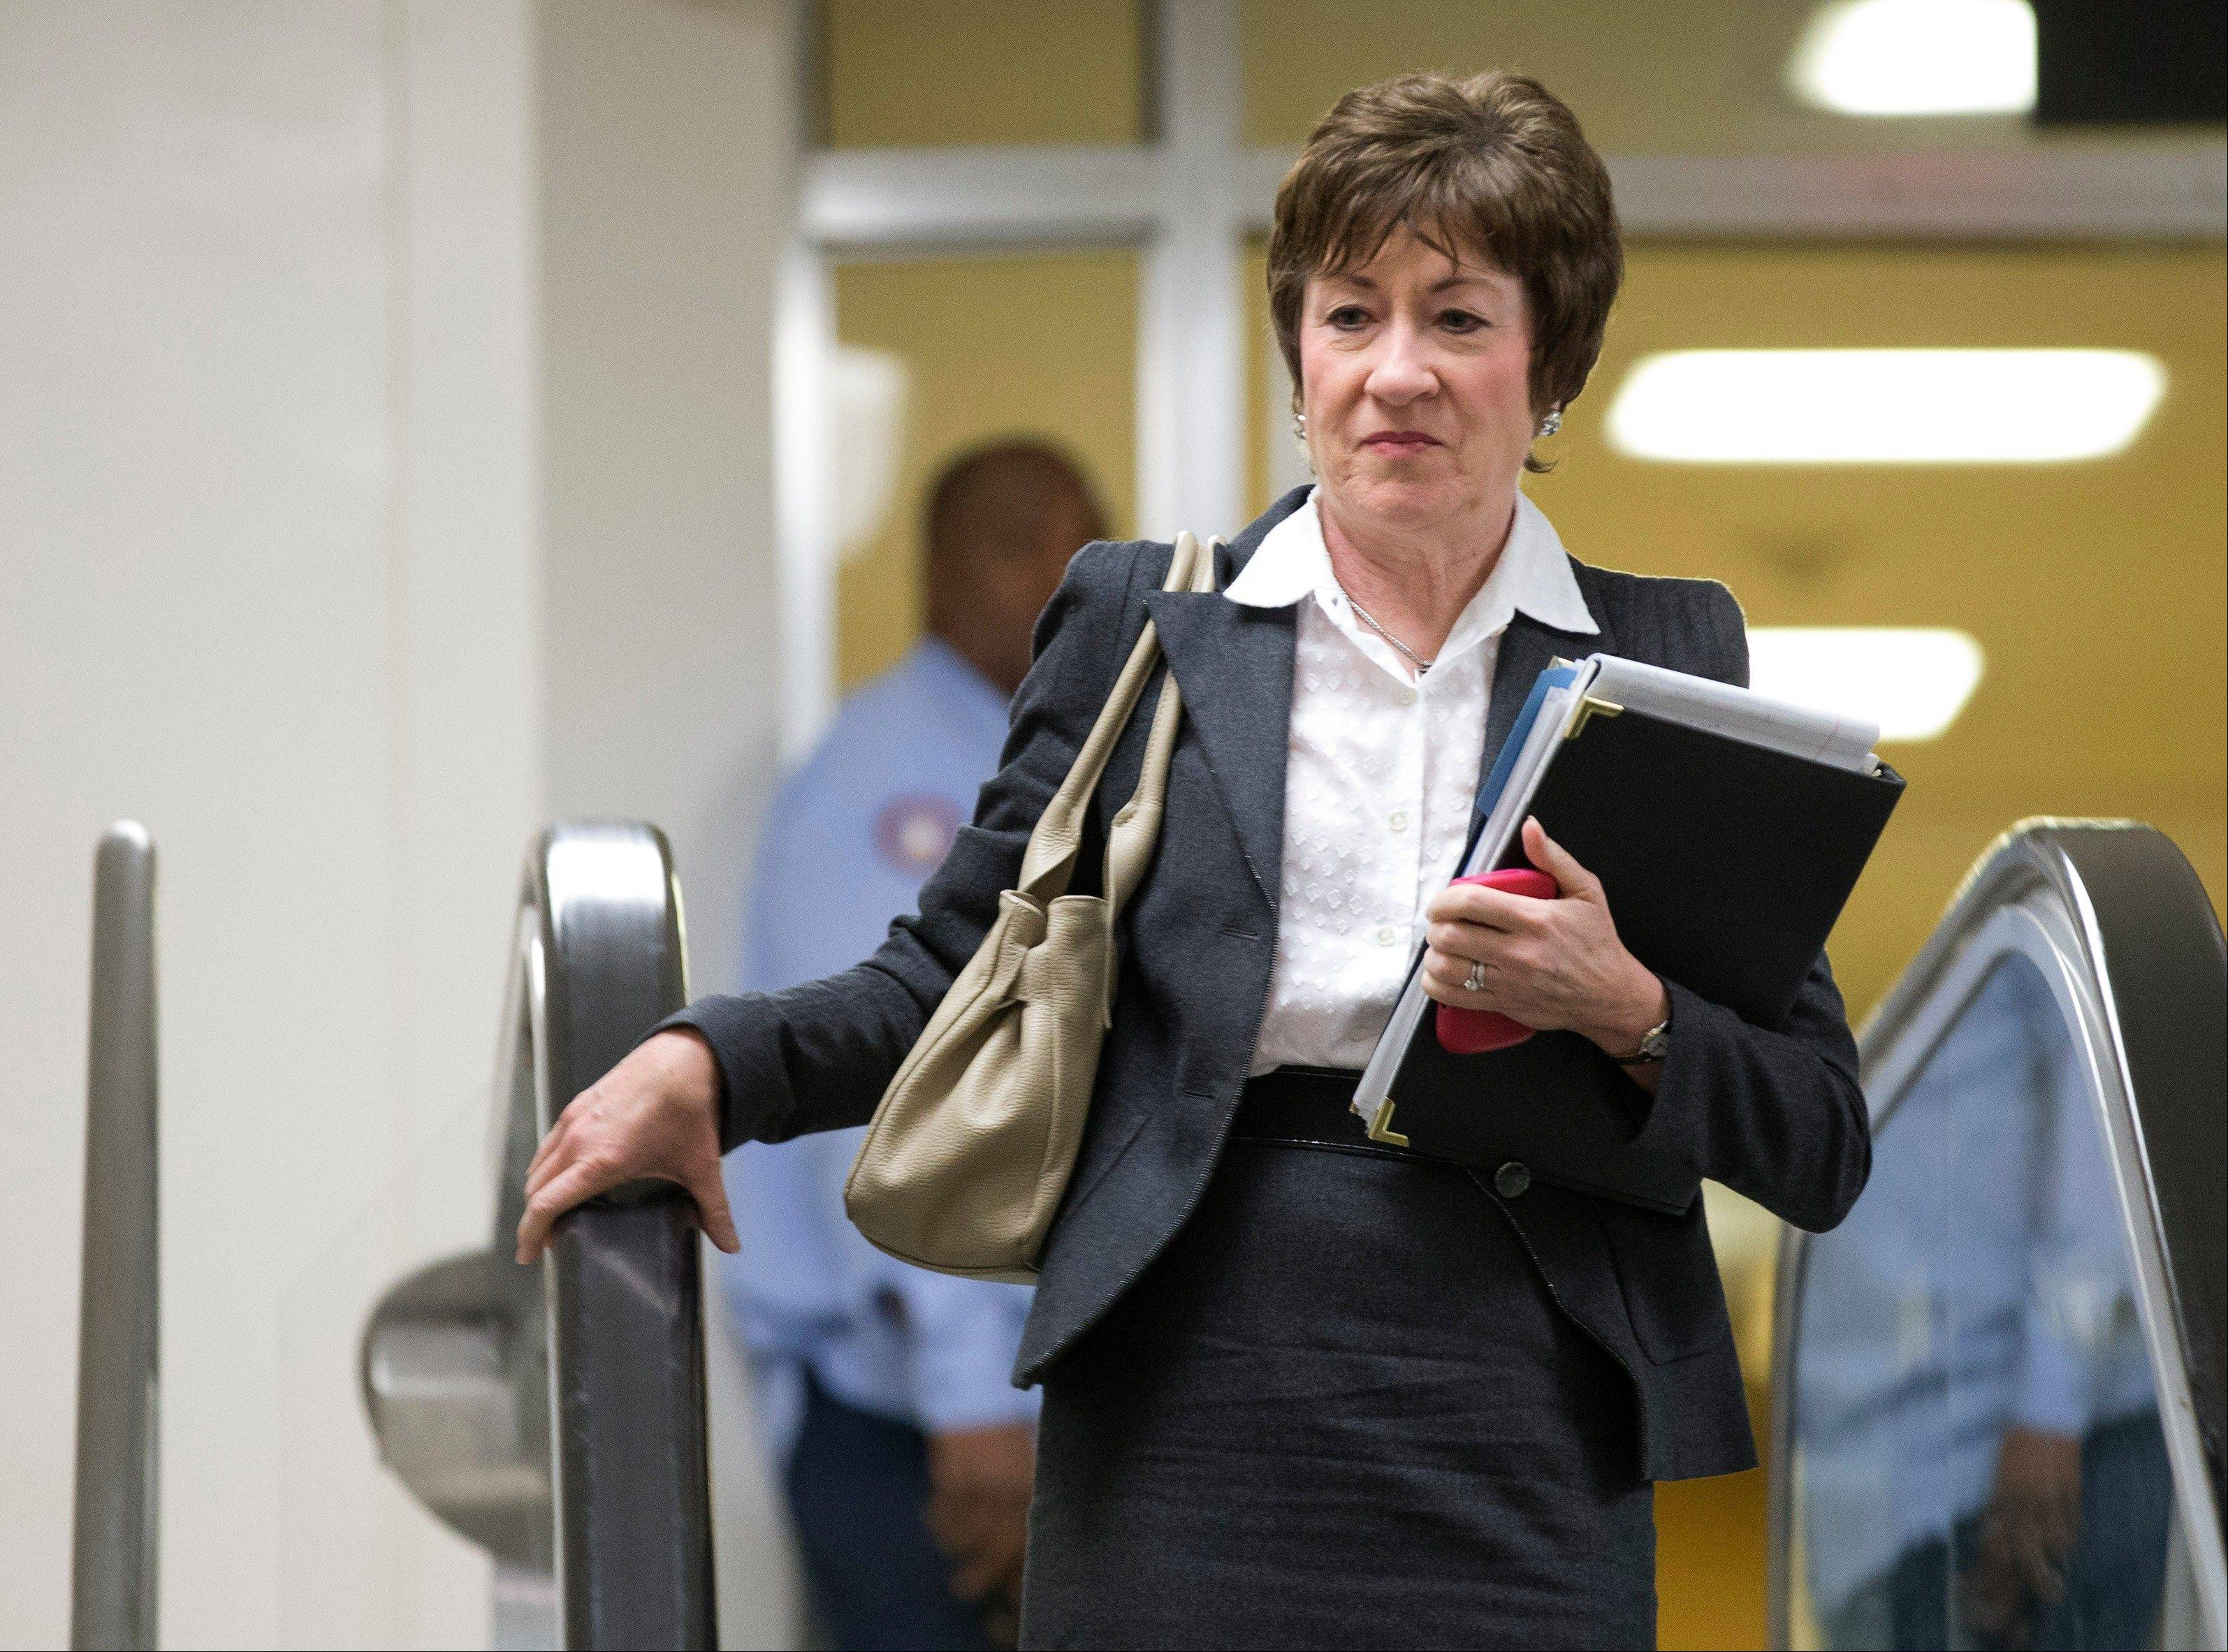 Sen. Susan Collins, R-Maine, ranking Republican on the Senate Homeland Security and Governmental Affairs Committee walks to a meeting on Capitol Hill in Washington, Wednesday, Nov. 28, 2012, for a meeting with UN Ambassador Susan Rice. Rice continued her fight Wednesday to win over skeptics in the Senate who could block her chances at becoming the next U.S. secretary of state.